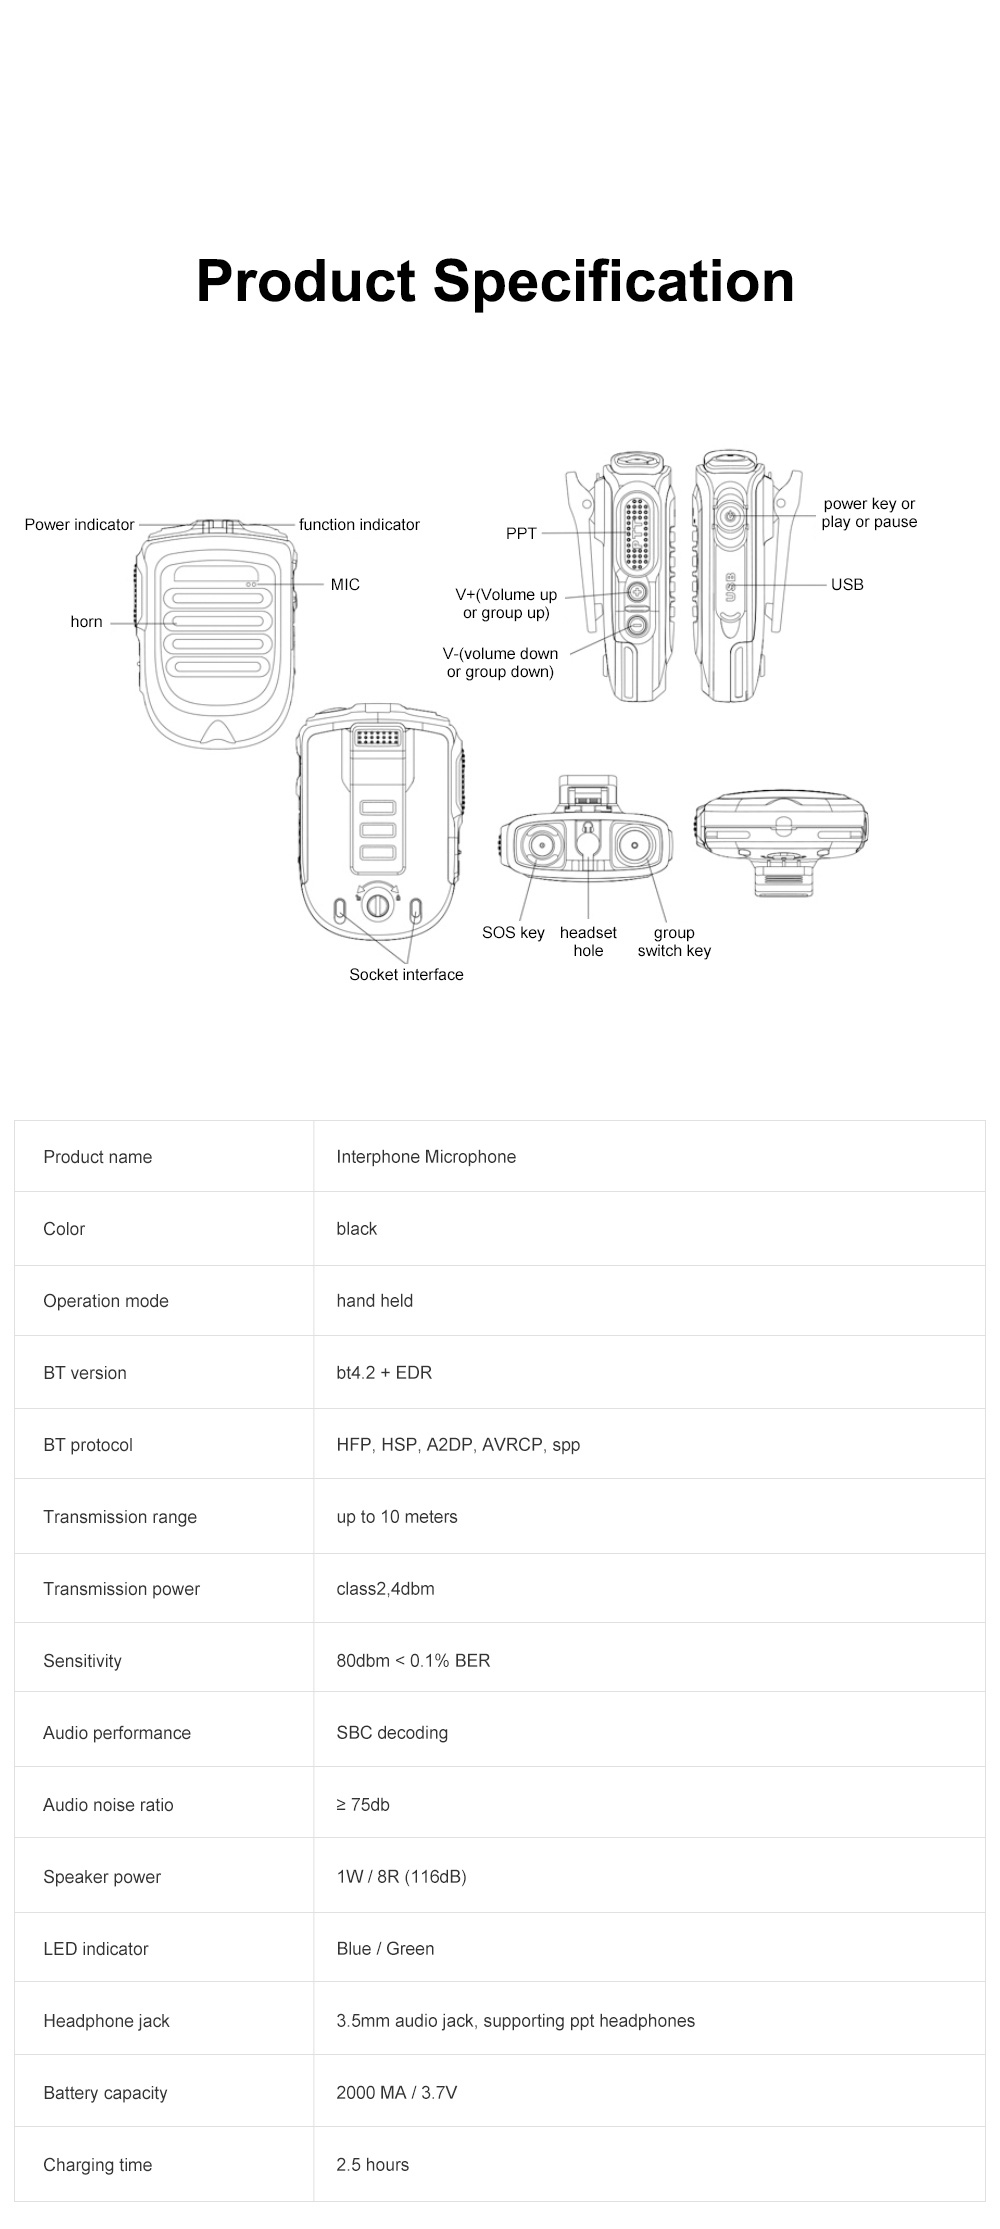 Interphone Microphone Android IOS Mobile Phone Bluetooth Headset Wireless Interphone Handset ZELLO Public Network Portable Walkie Talkie 6